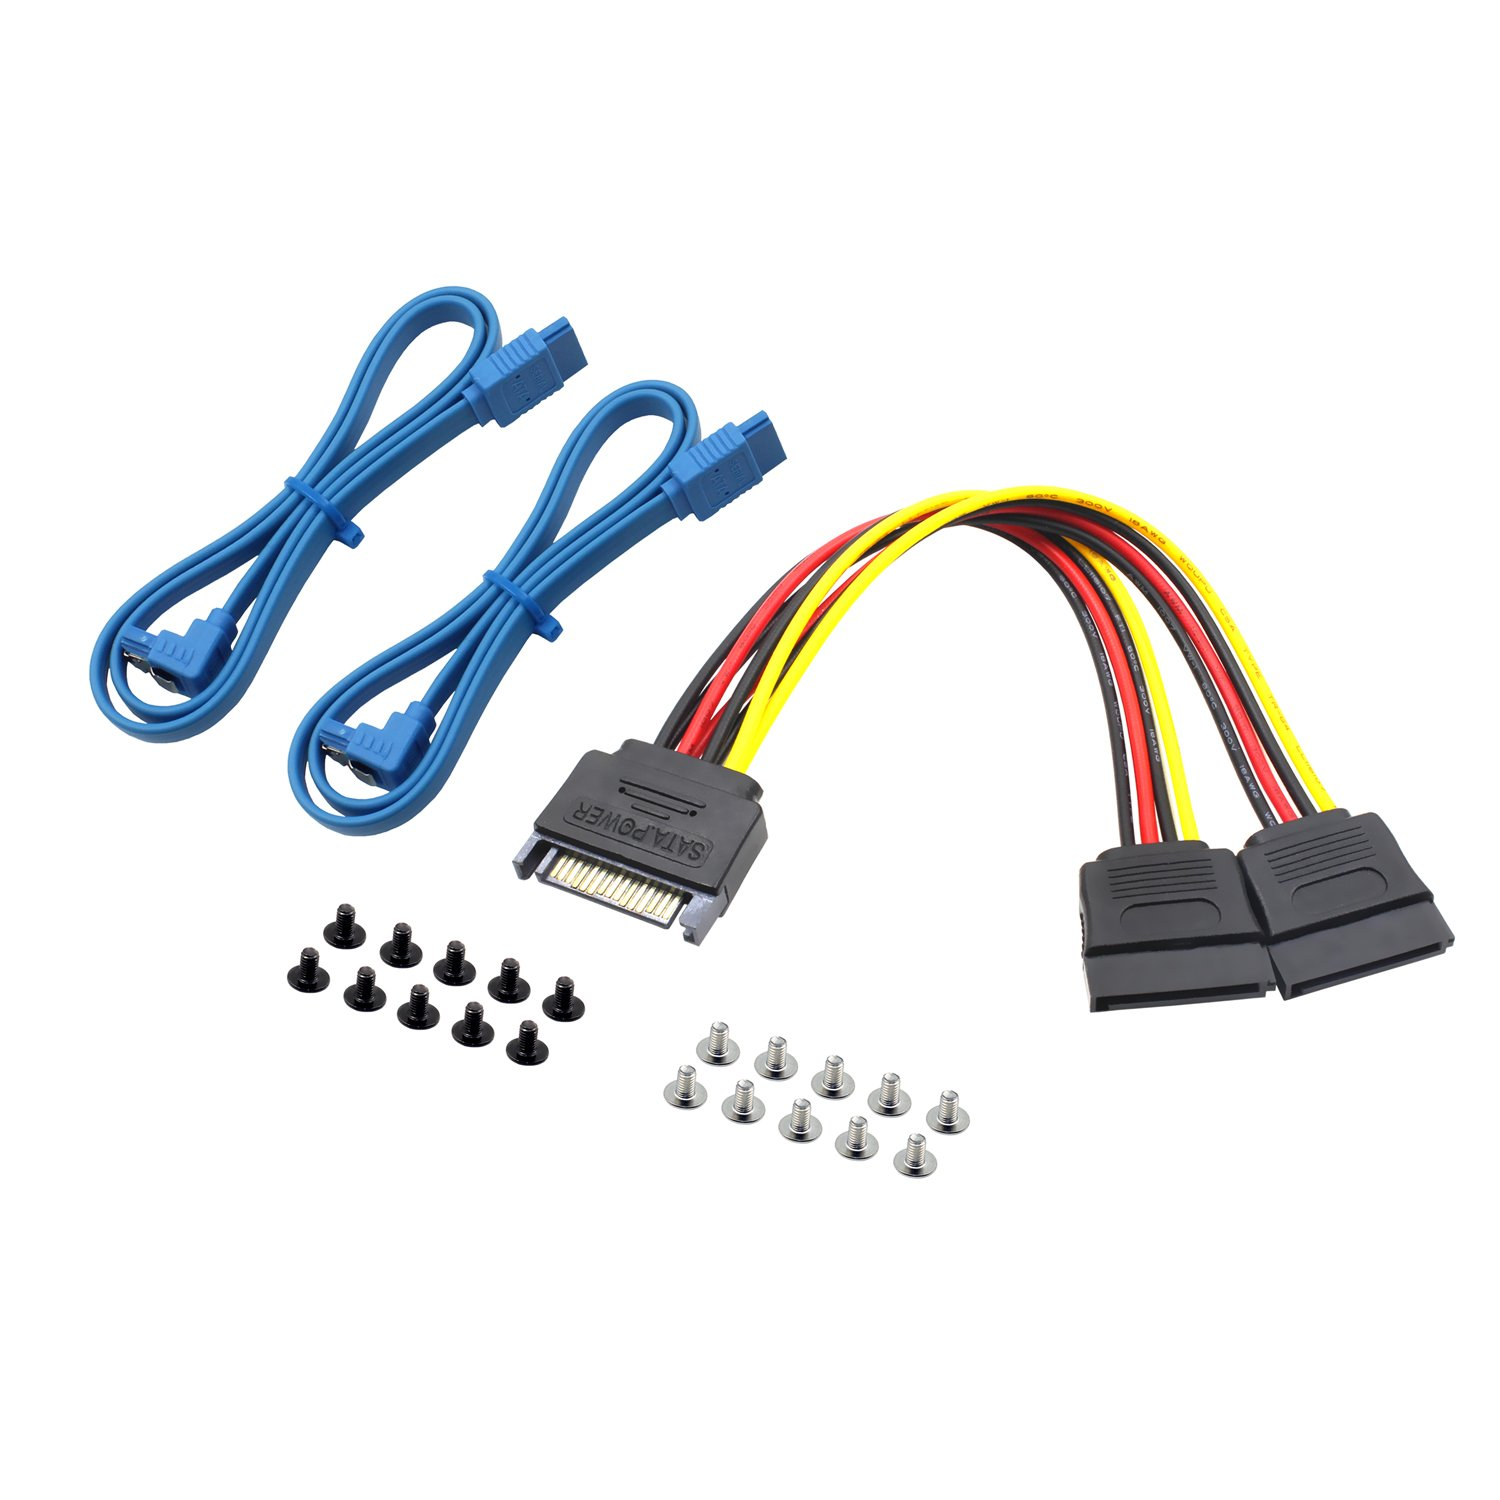 "Mcsher 20"" Inch 6Gbps SATA 3 Data Cable SATA to SATA Power Splitter Cord Mounting Screws Set/HDD SSD SATA Hard Drive Connection Kit"